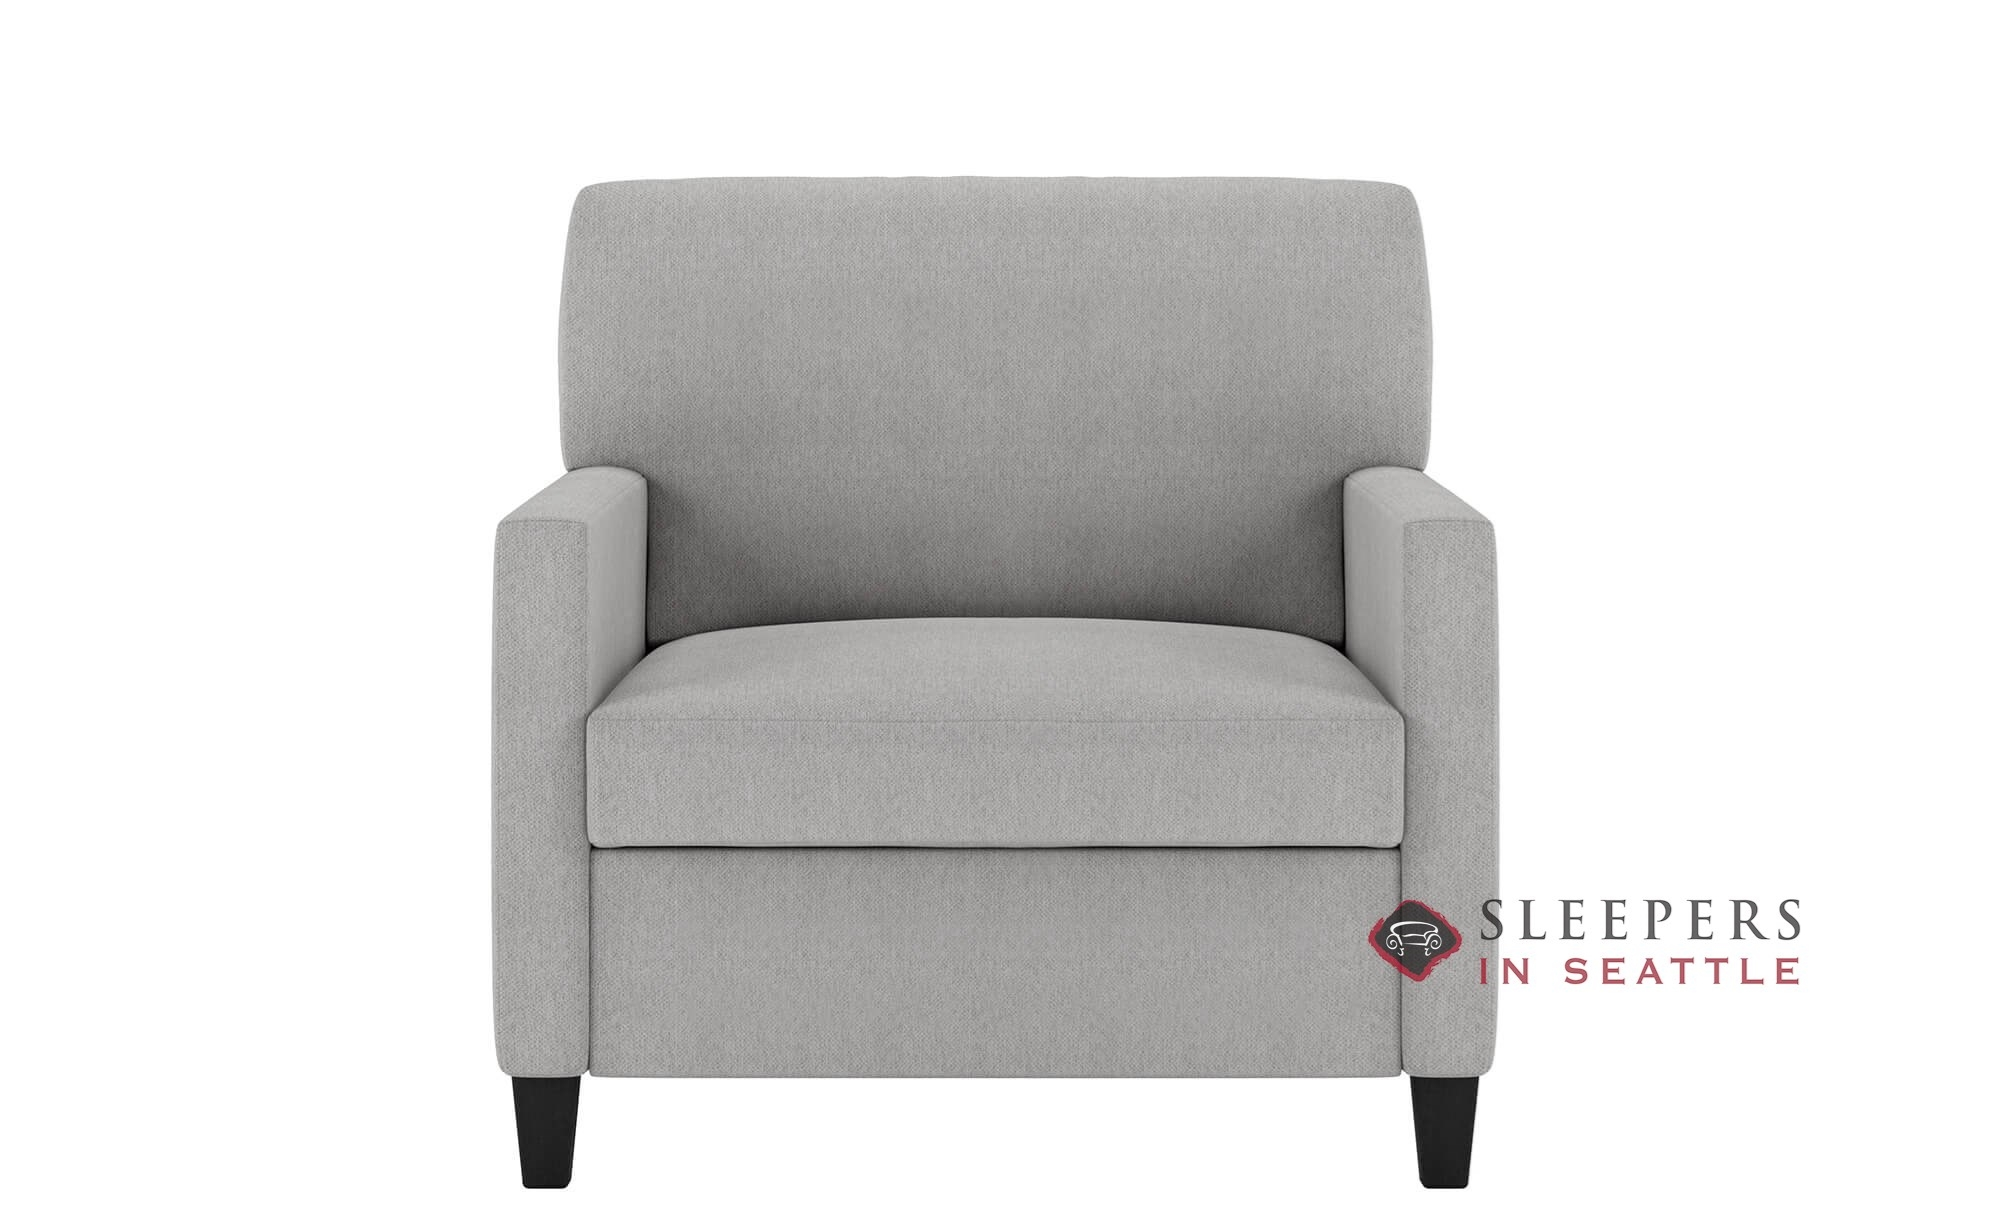 Marvelous American Leather Conley High Leg Leather Chair Comfort Sleeper Generation Viii Pabps2019 Chair Design Images Pabps2019Com